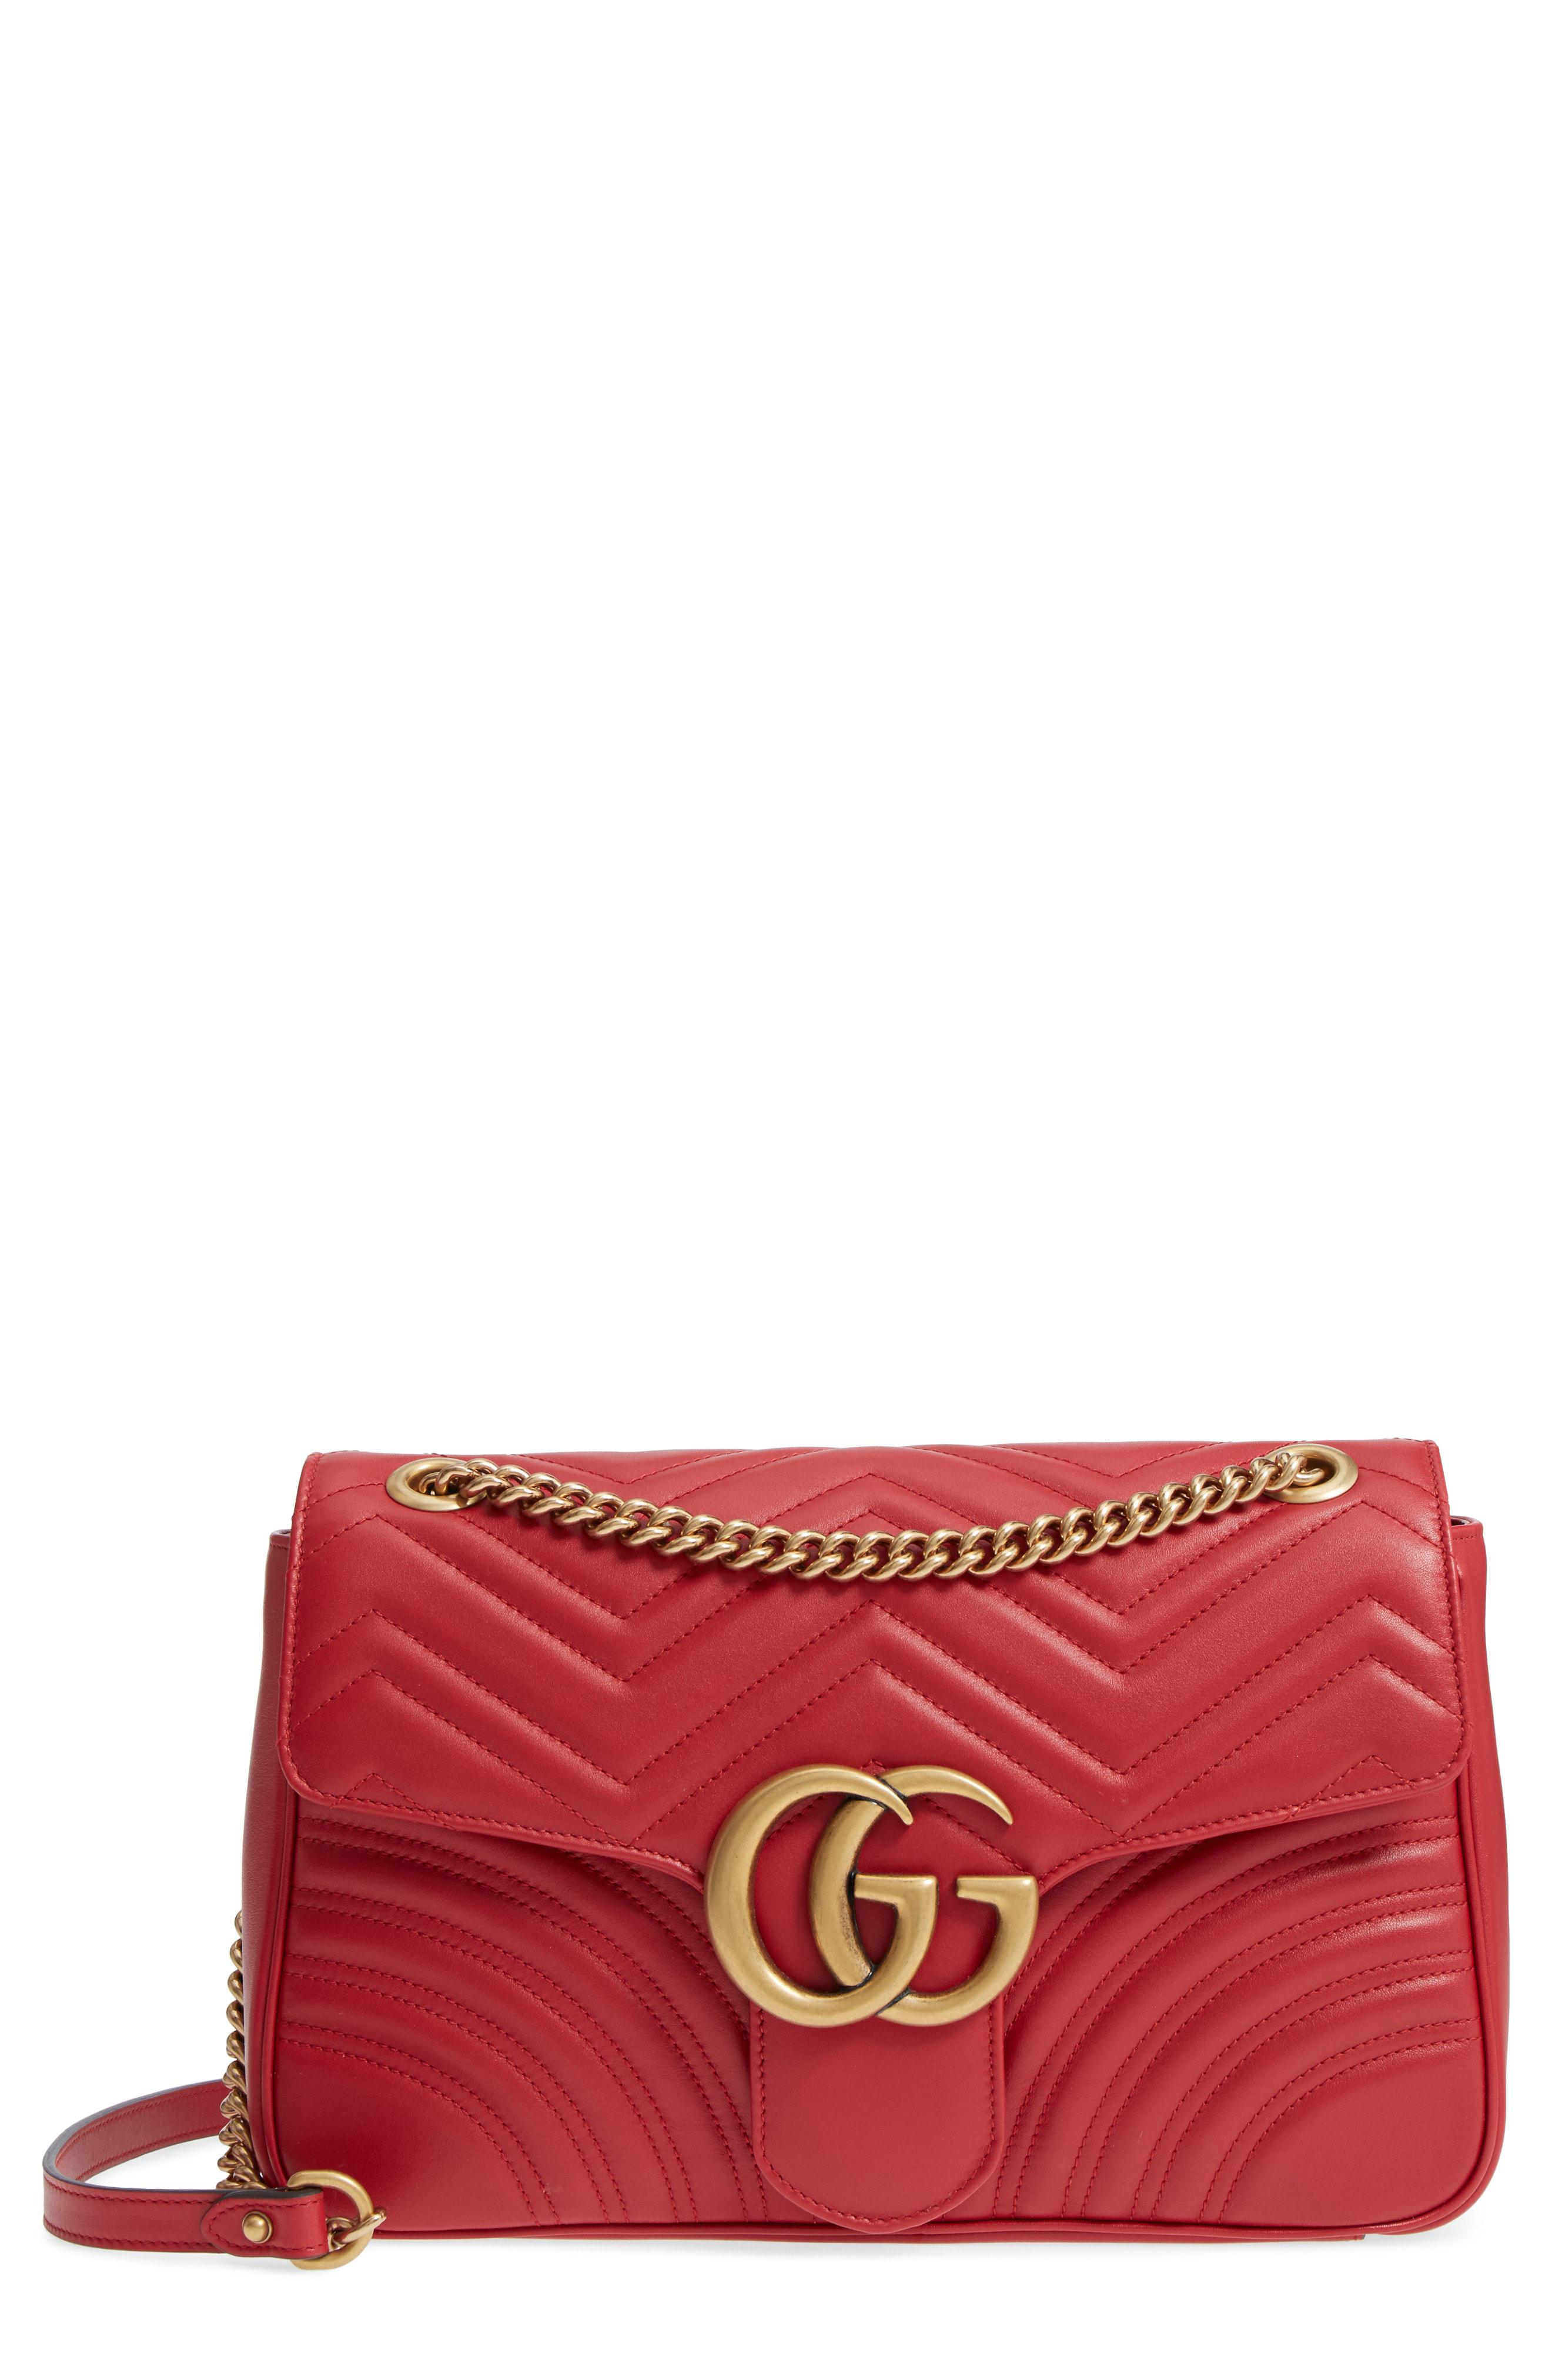 ec82faa27 Gucci Medium Gg Marmont 2.0 Matelasse Leather Shoulder Bag - Red In  Hibiscus Red